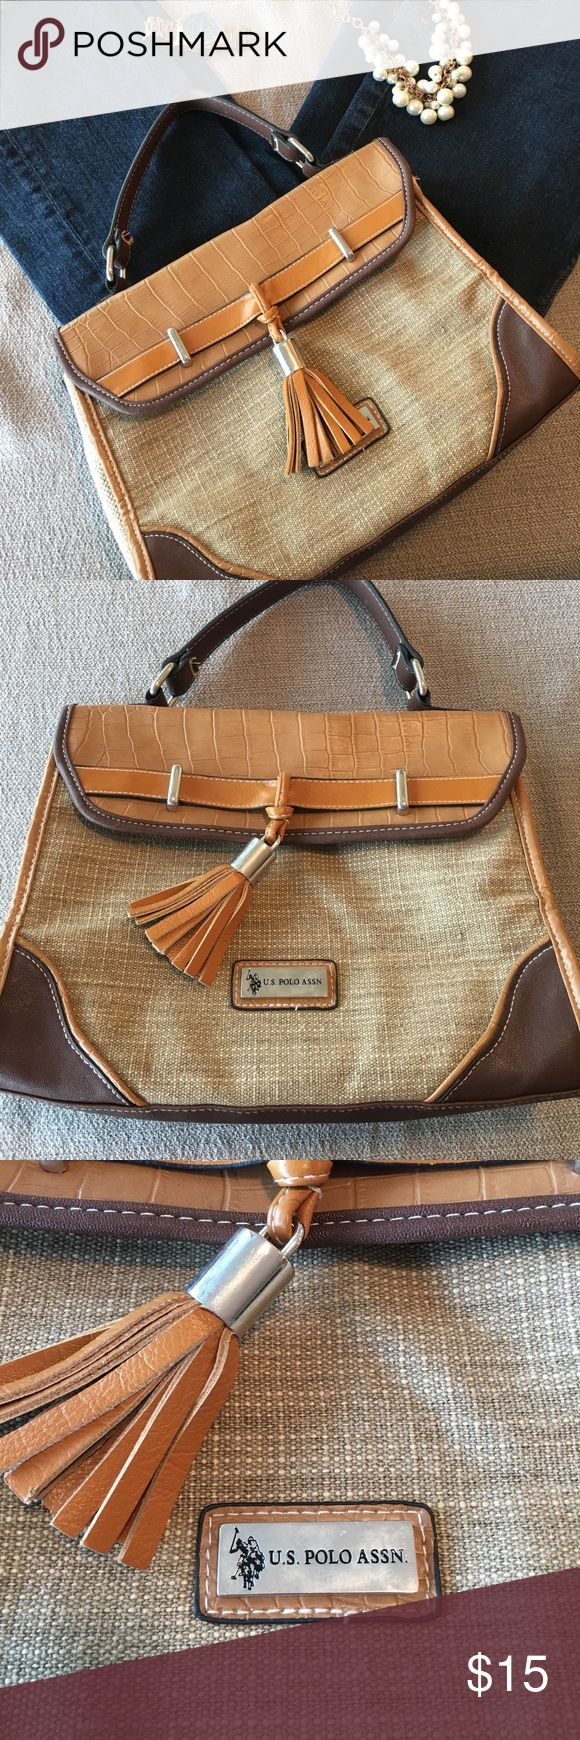 US Polo Assn handbag. Tassel, faux leather accent US Polo Assn handbag. Interior has two pocket and a zip pocket. Exterior has faux leather accents on a light tan tweed body. Magnetic closure. Tassel on closure with silver accents. Leather hand strap to carry. U.S. Polo Assn. Bags Satchels